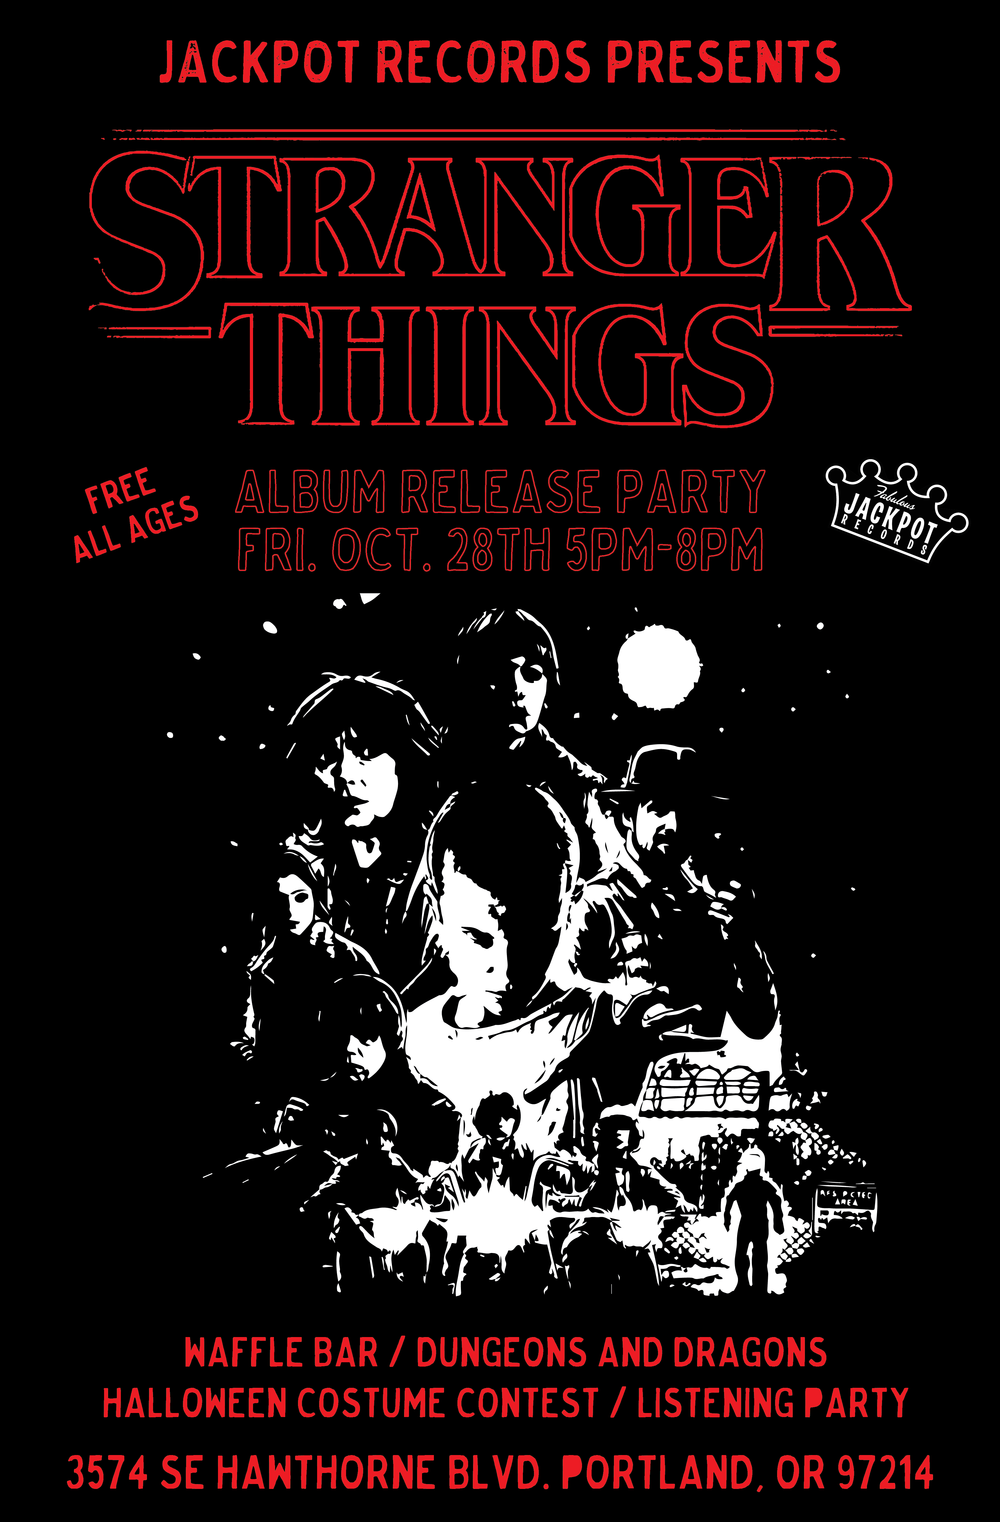 Stranger Things Party Poster Jackpot Records-03.png